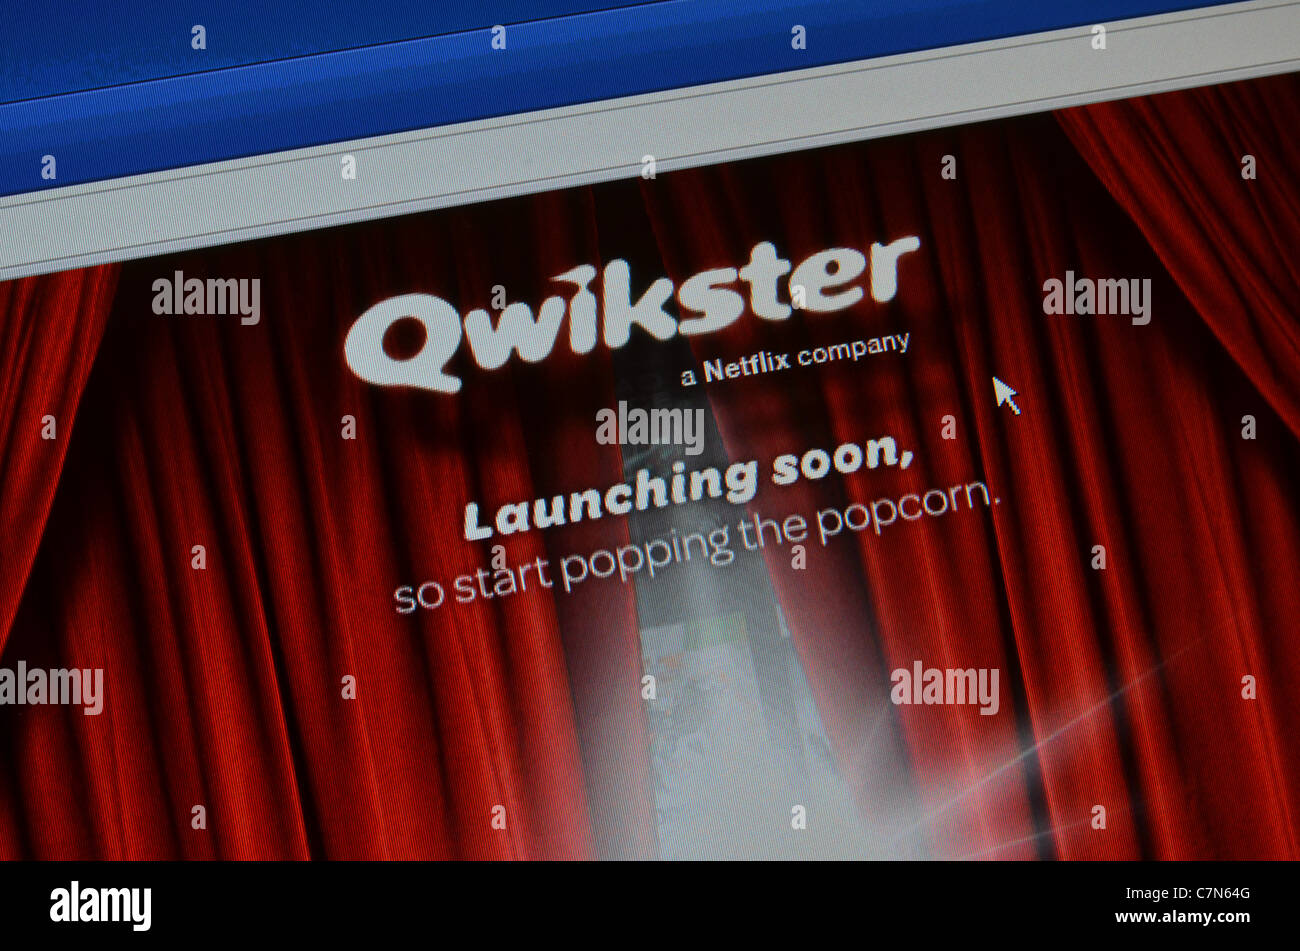 qwikster new launch page for netflix